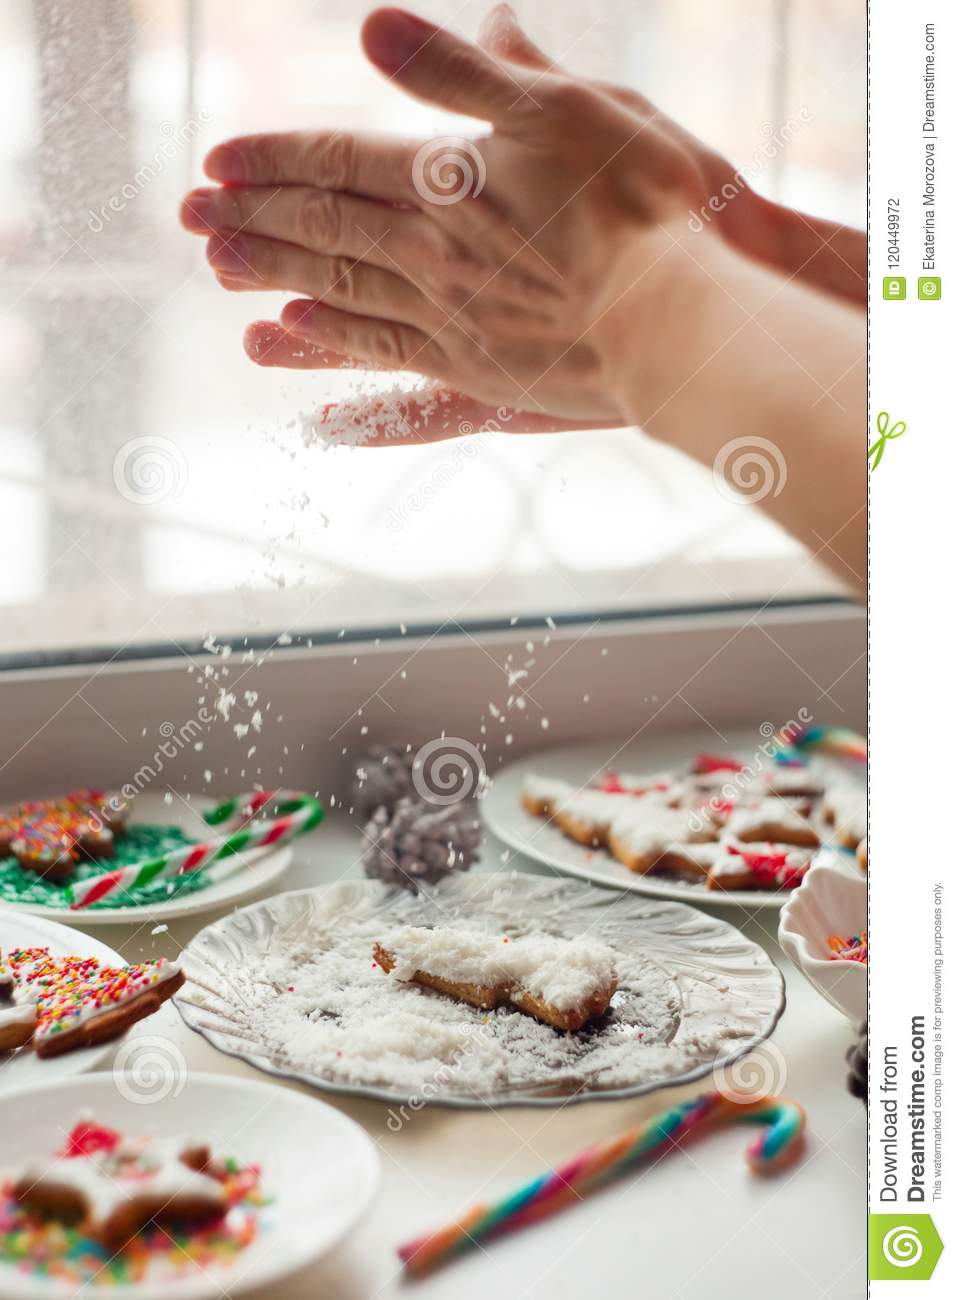 Creative Christmas Cookies On The White Plate Hands Sprinkle Crumbs